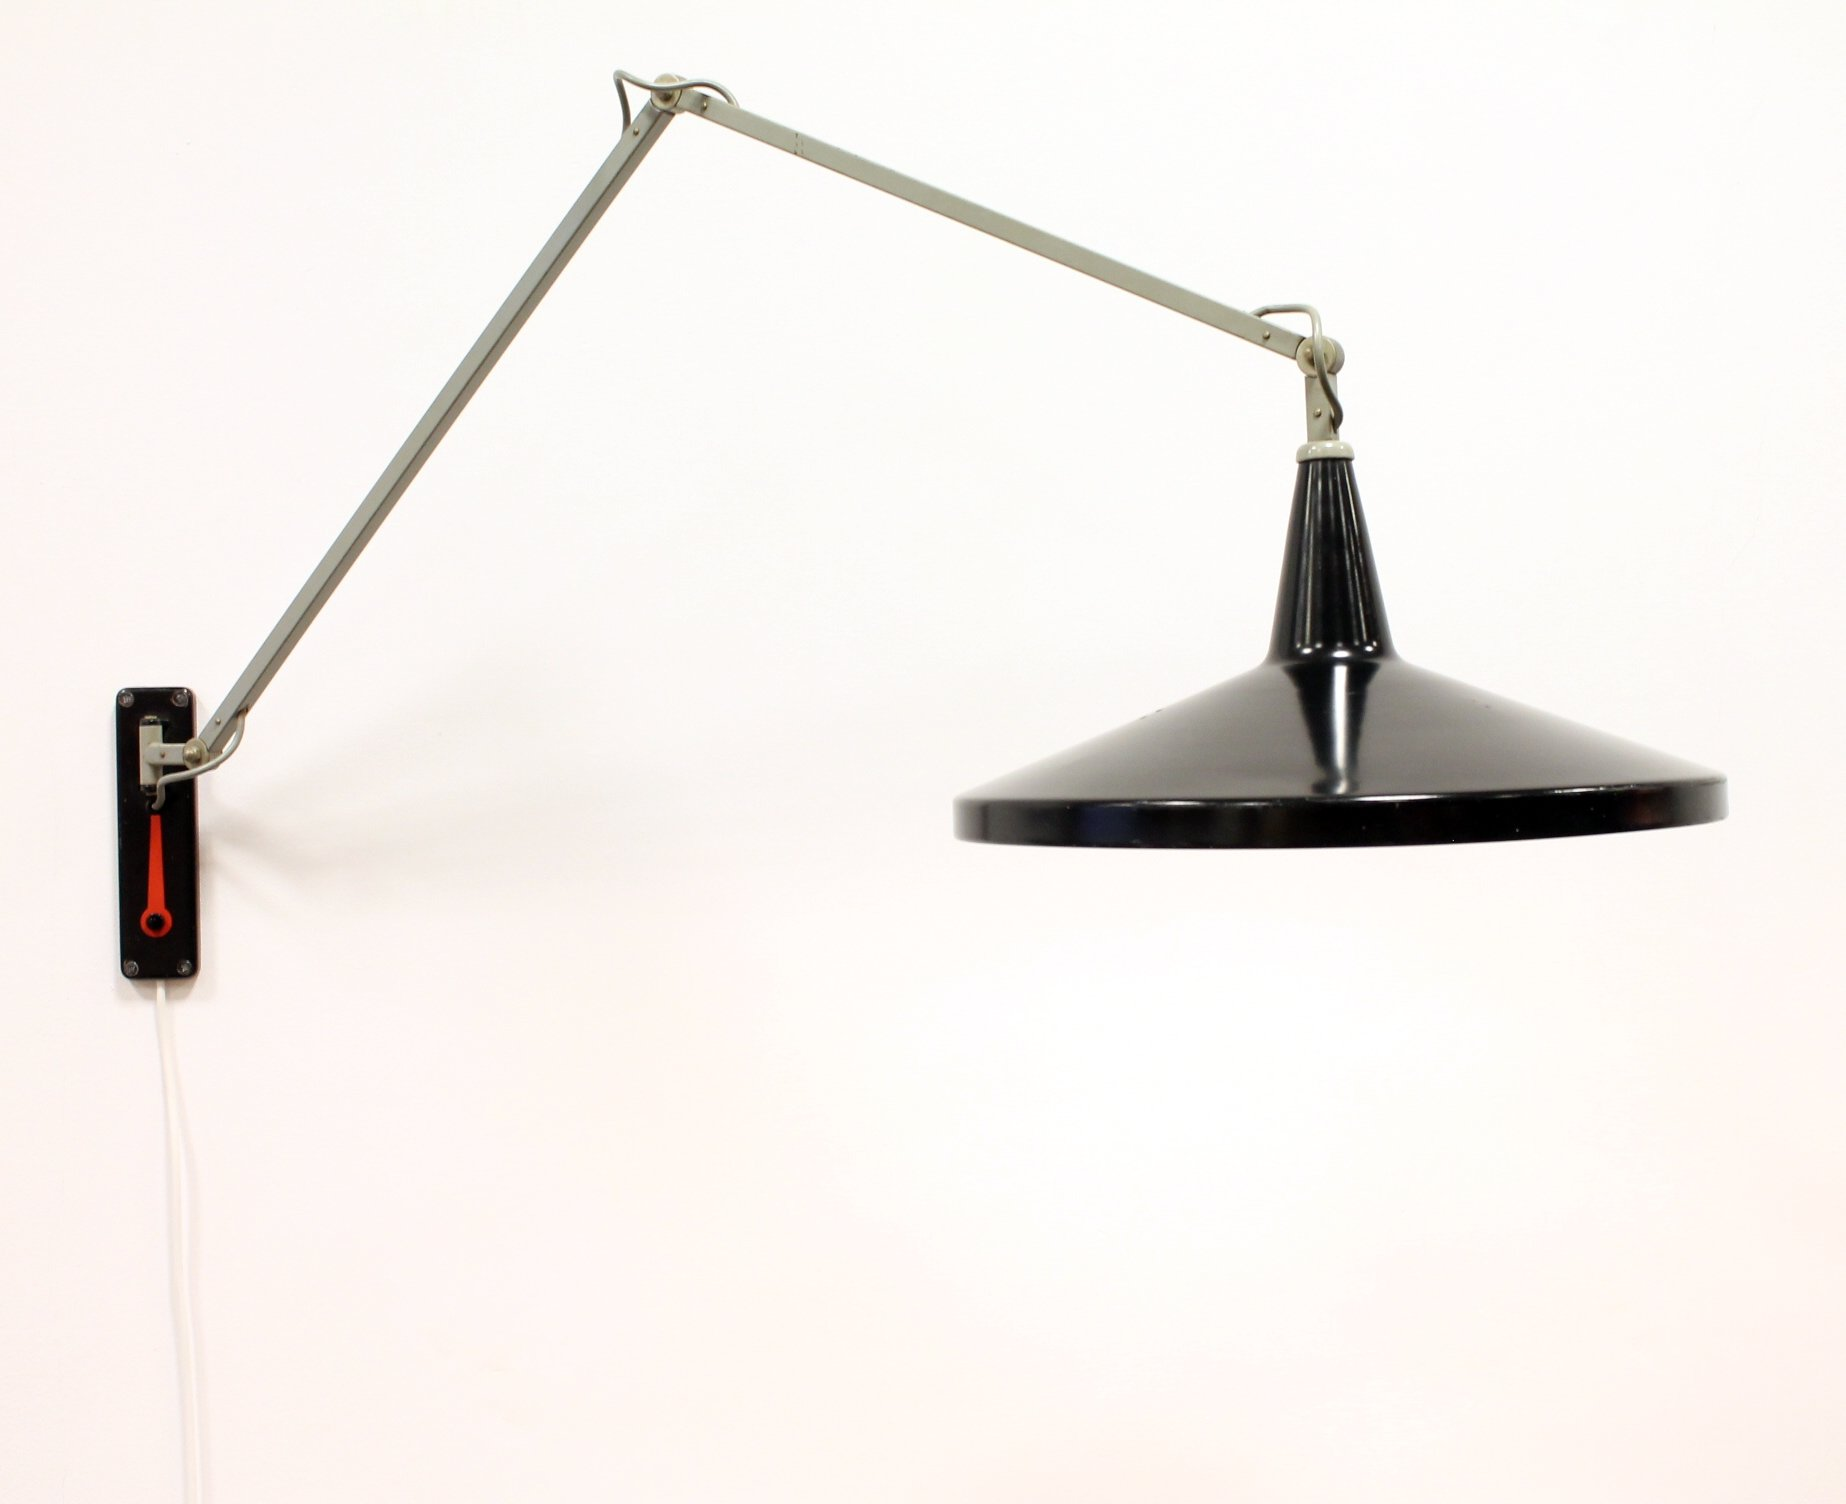 Rietveld Lampen Nl : Panama wall lamp by wim rietveld for gispen 1950s #71605